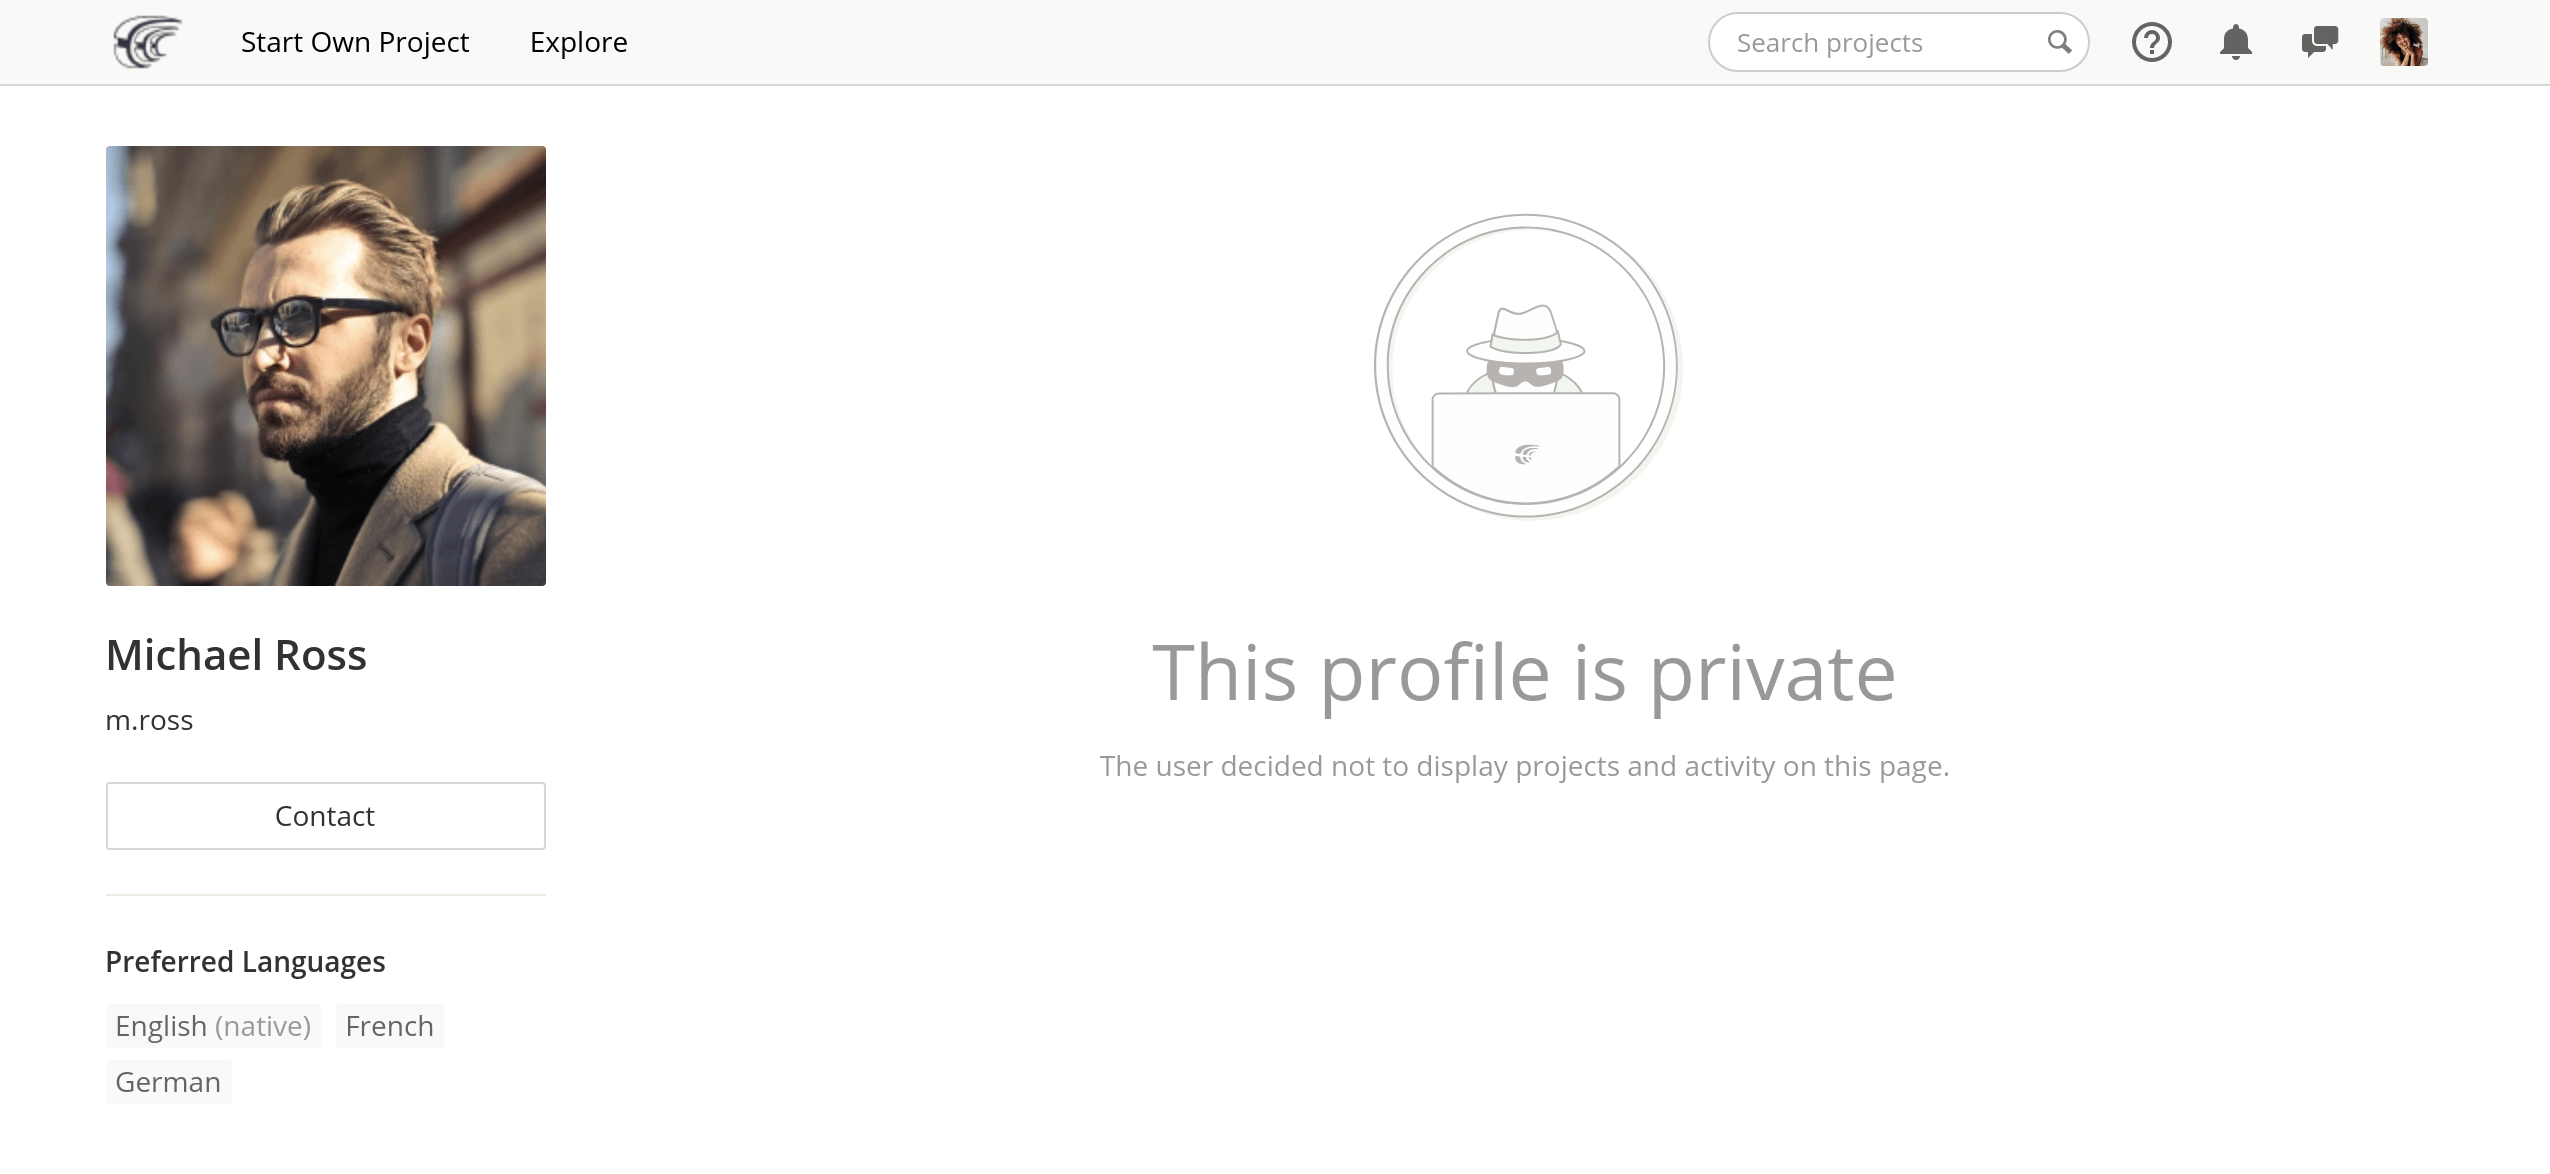 This profile is private